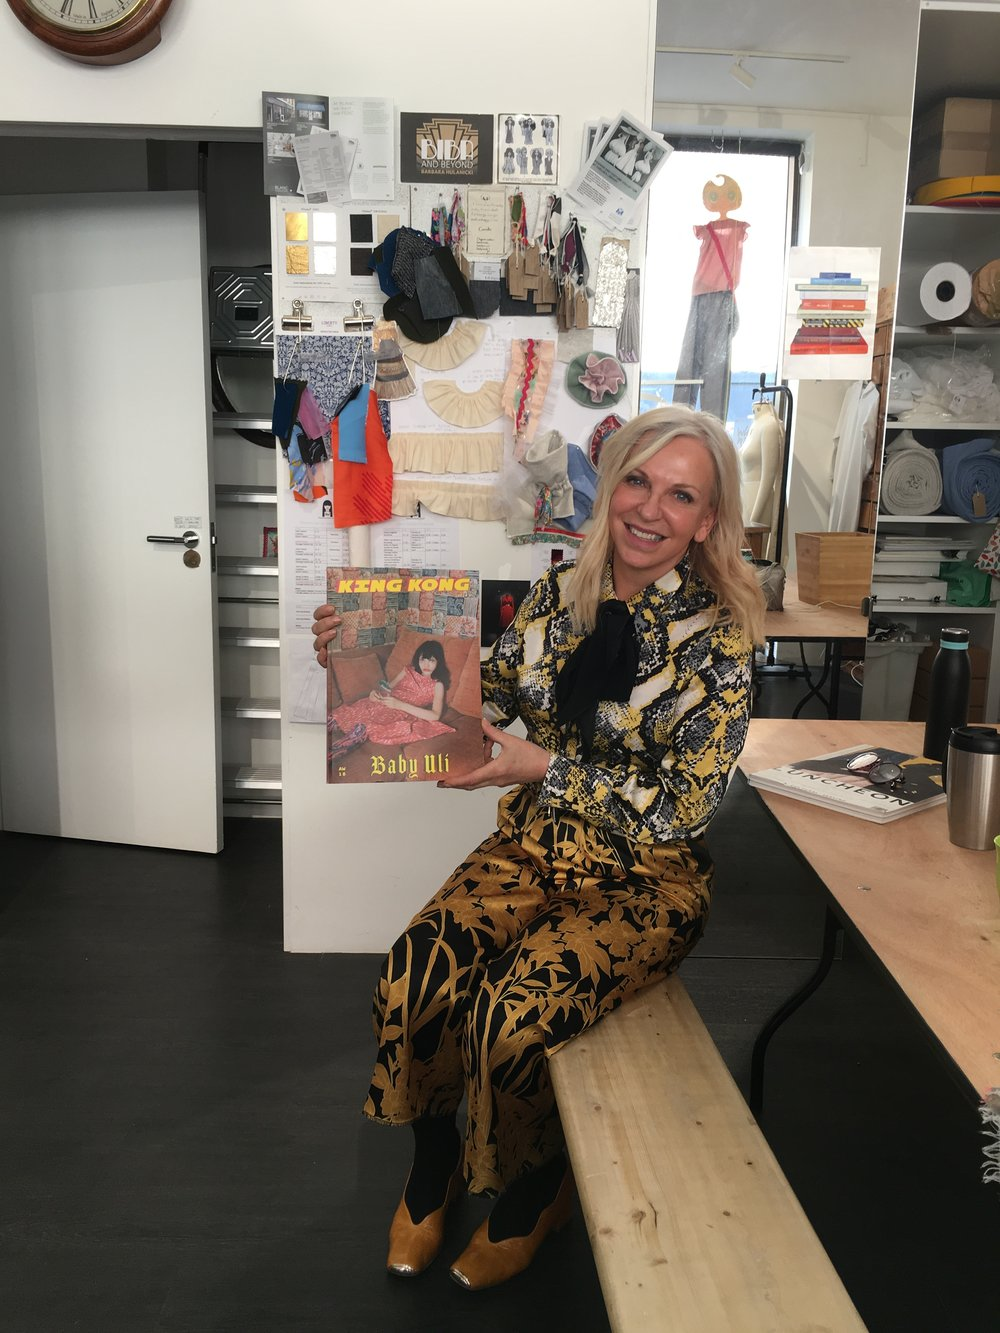 The Fashion School founder Caroline Gration holding up a copy of King Kong featuring work from the school.